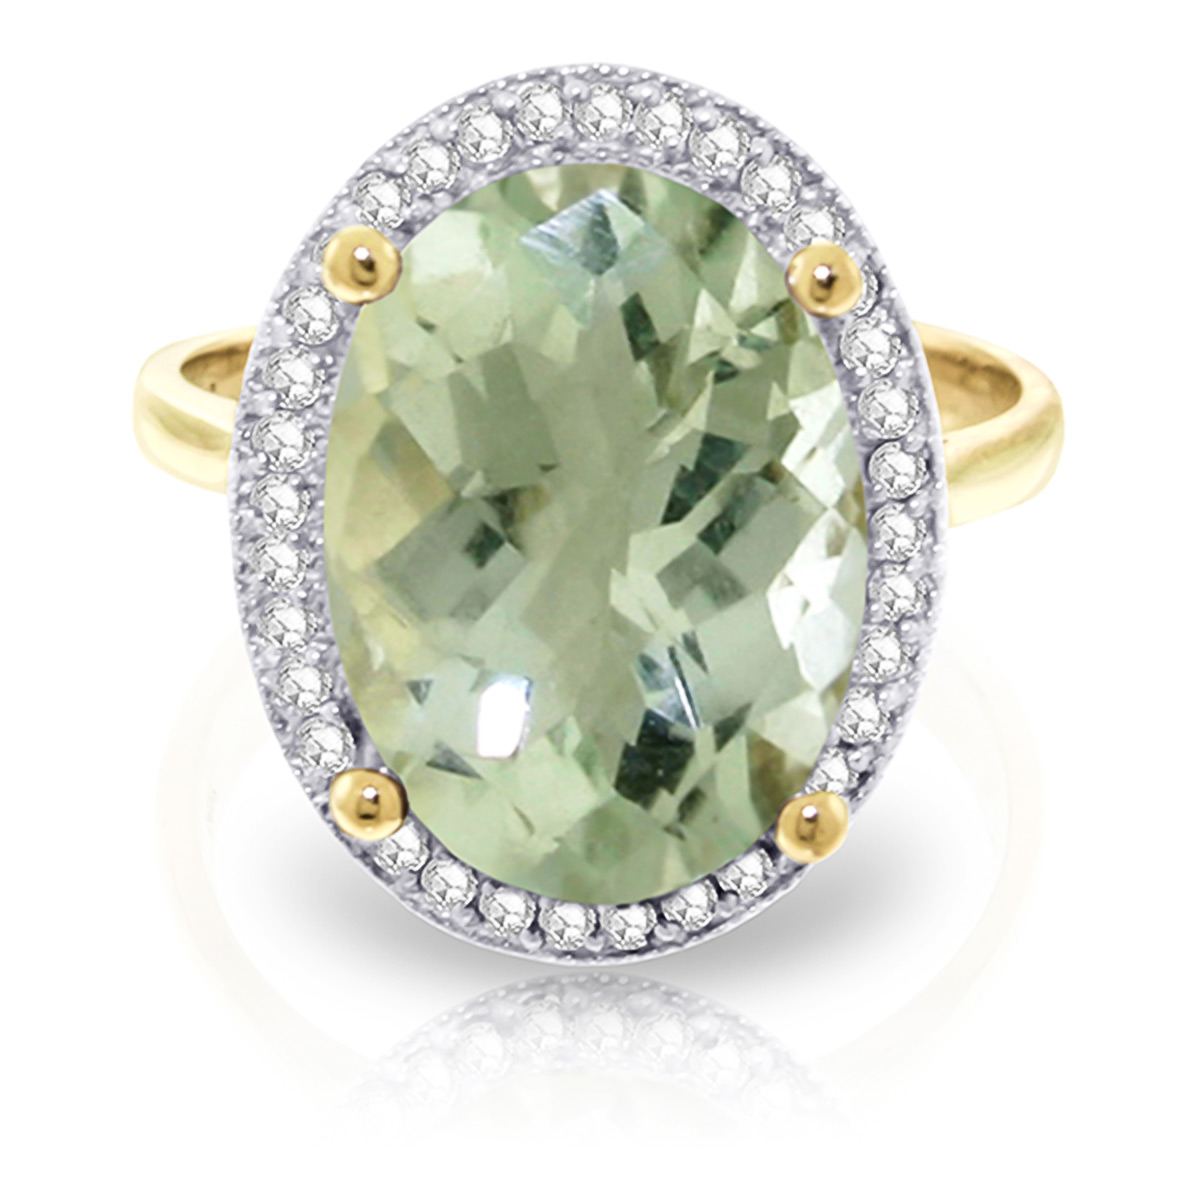 Green Amethyst and Diamond Halo Ring 5.1ct in 9ct Gold